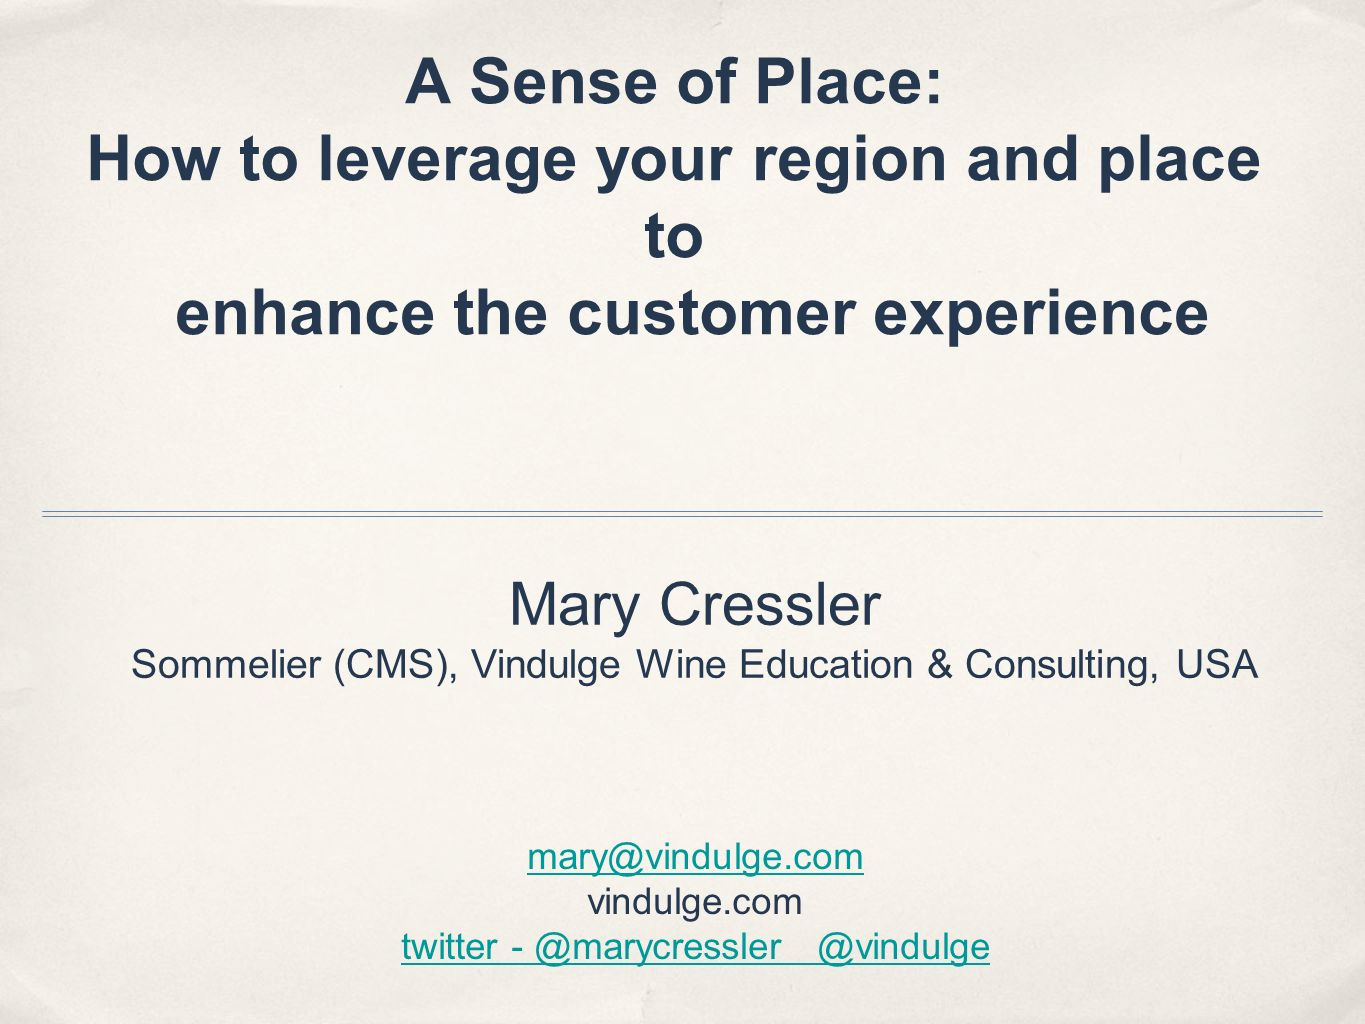 A Sense of Place: How to leverage your region and place to enhance the customer experience Mary Cressler Sommelier (CMS), Vindulge Wine Education & Consulting, USA vindulge.com